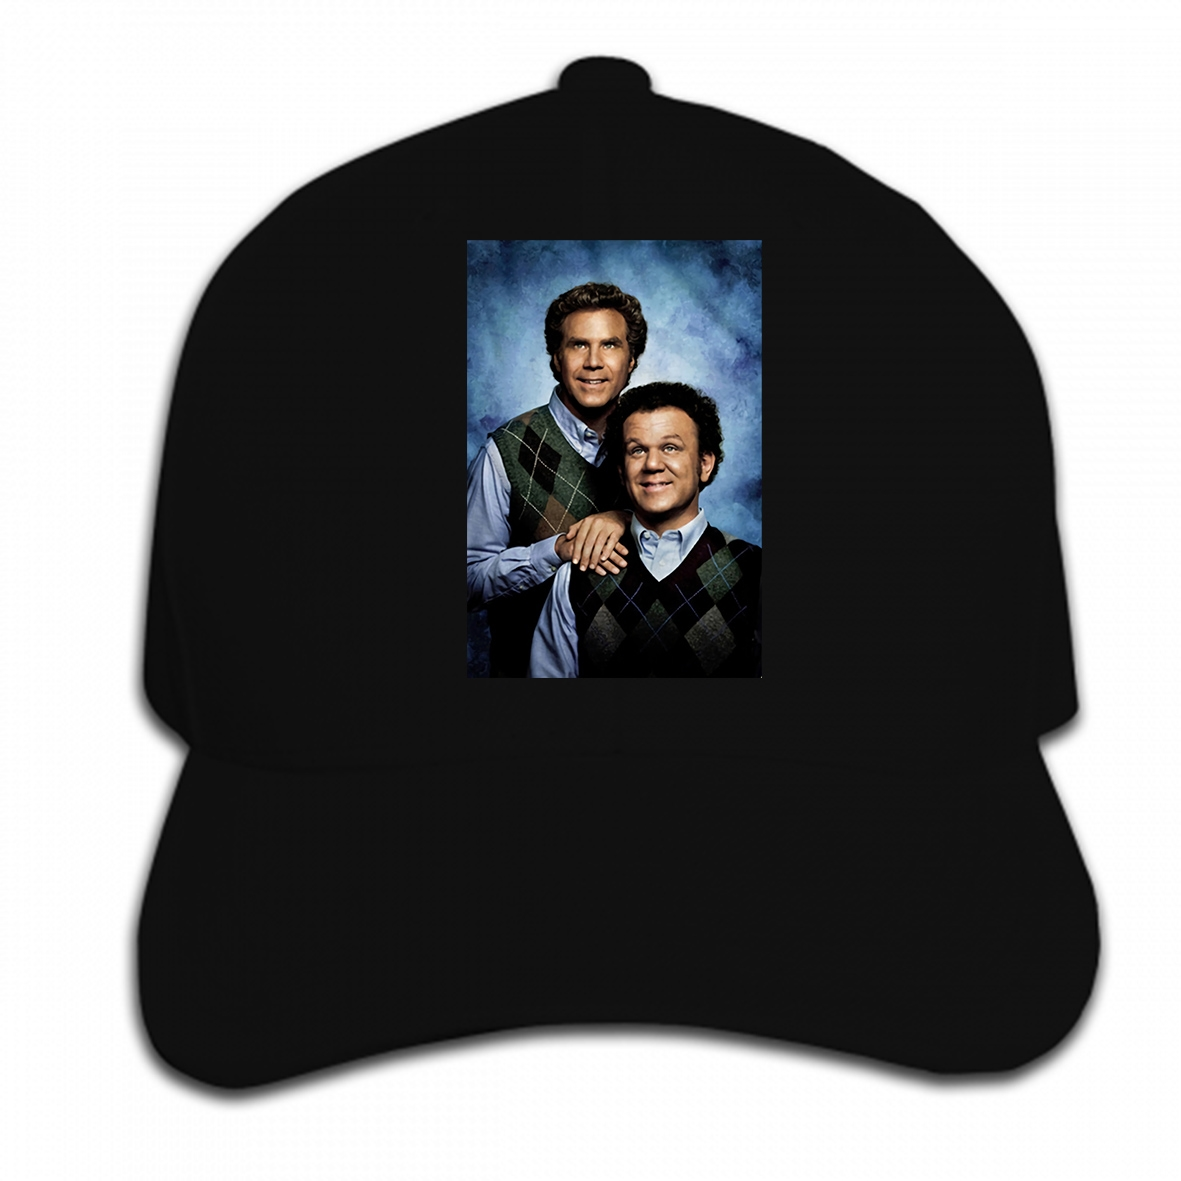 Print Custom Baseball Cap New Step Brothers Will Ferrell John C. Reilly Mens Movie Poster Hat Peaked cap image